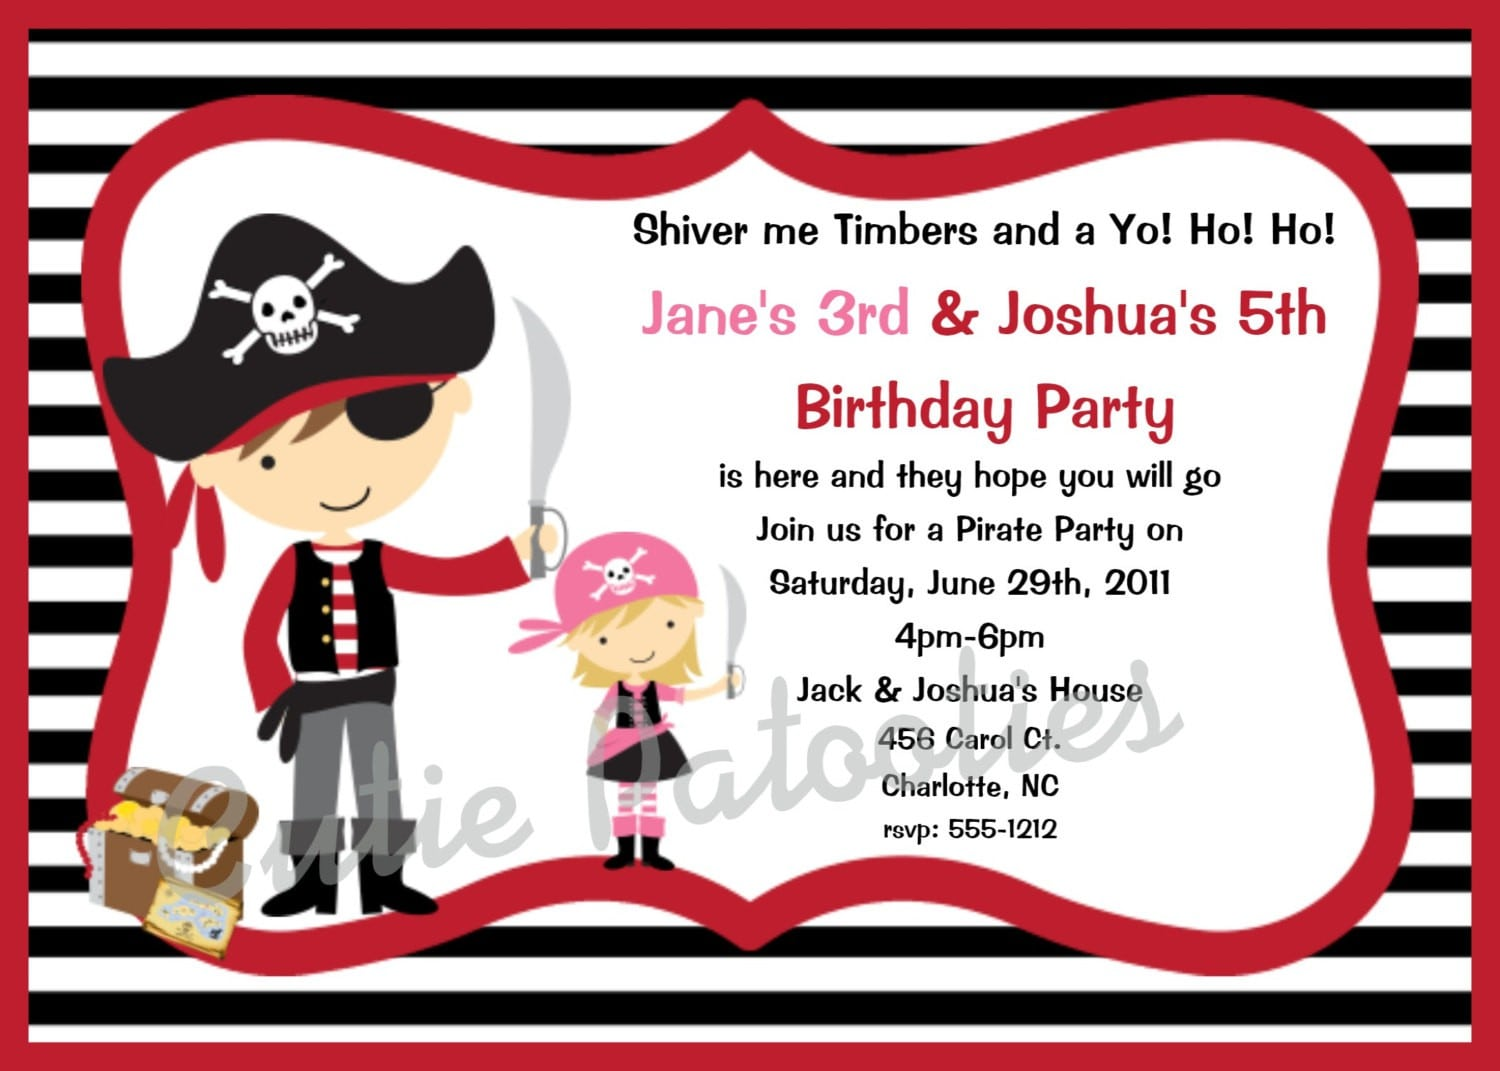 Pirate Party Invitations Printable princess kate wedding ring – Free Pirate Party Invitations